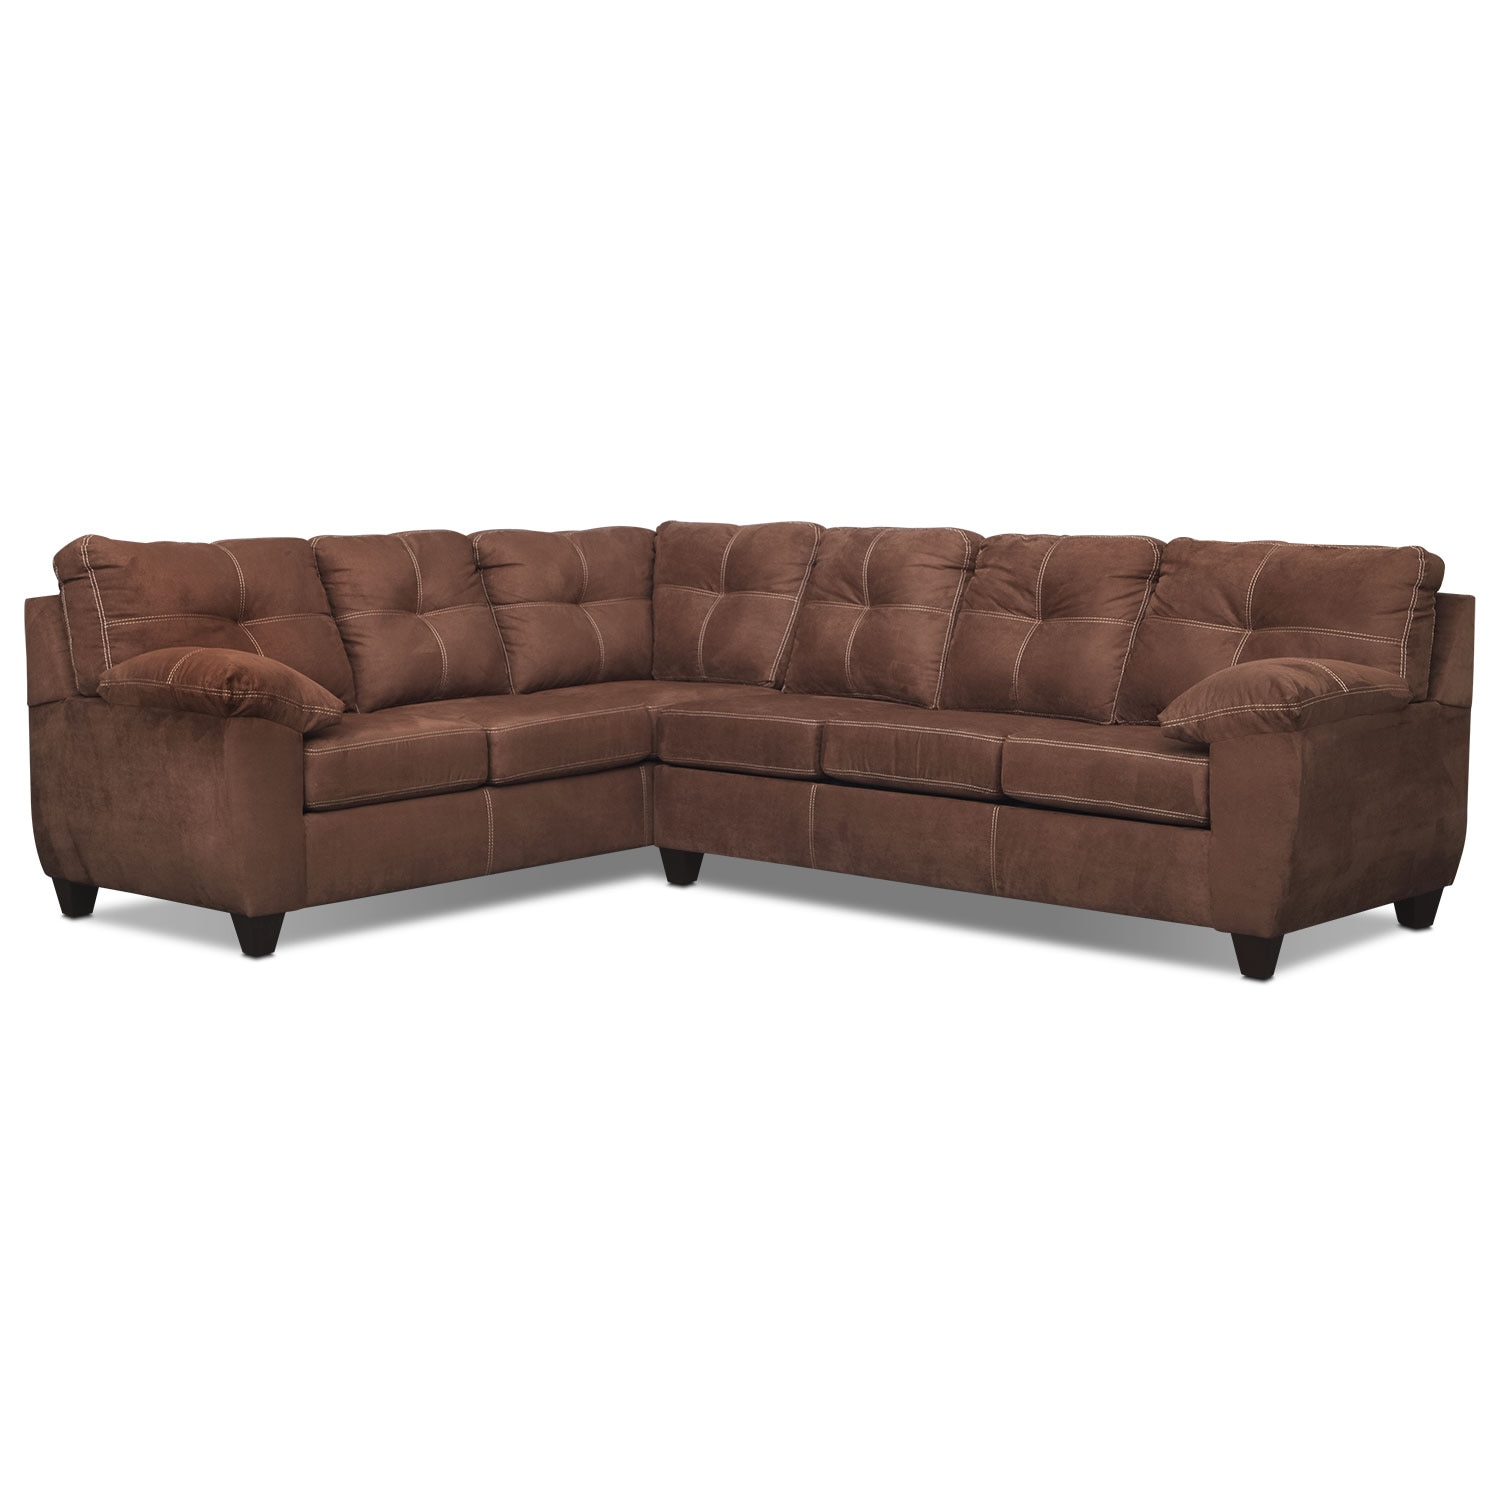 Rialto 2 Pc. Sectional with Left-Facing Sofa - Coffee